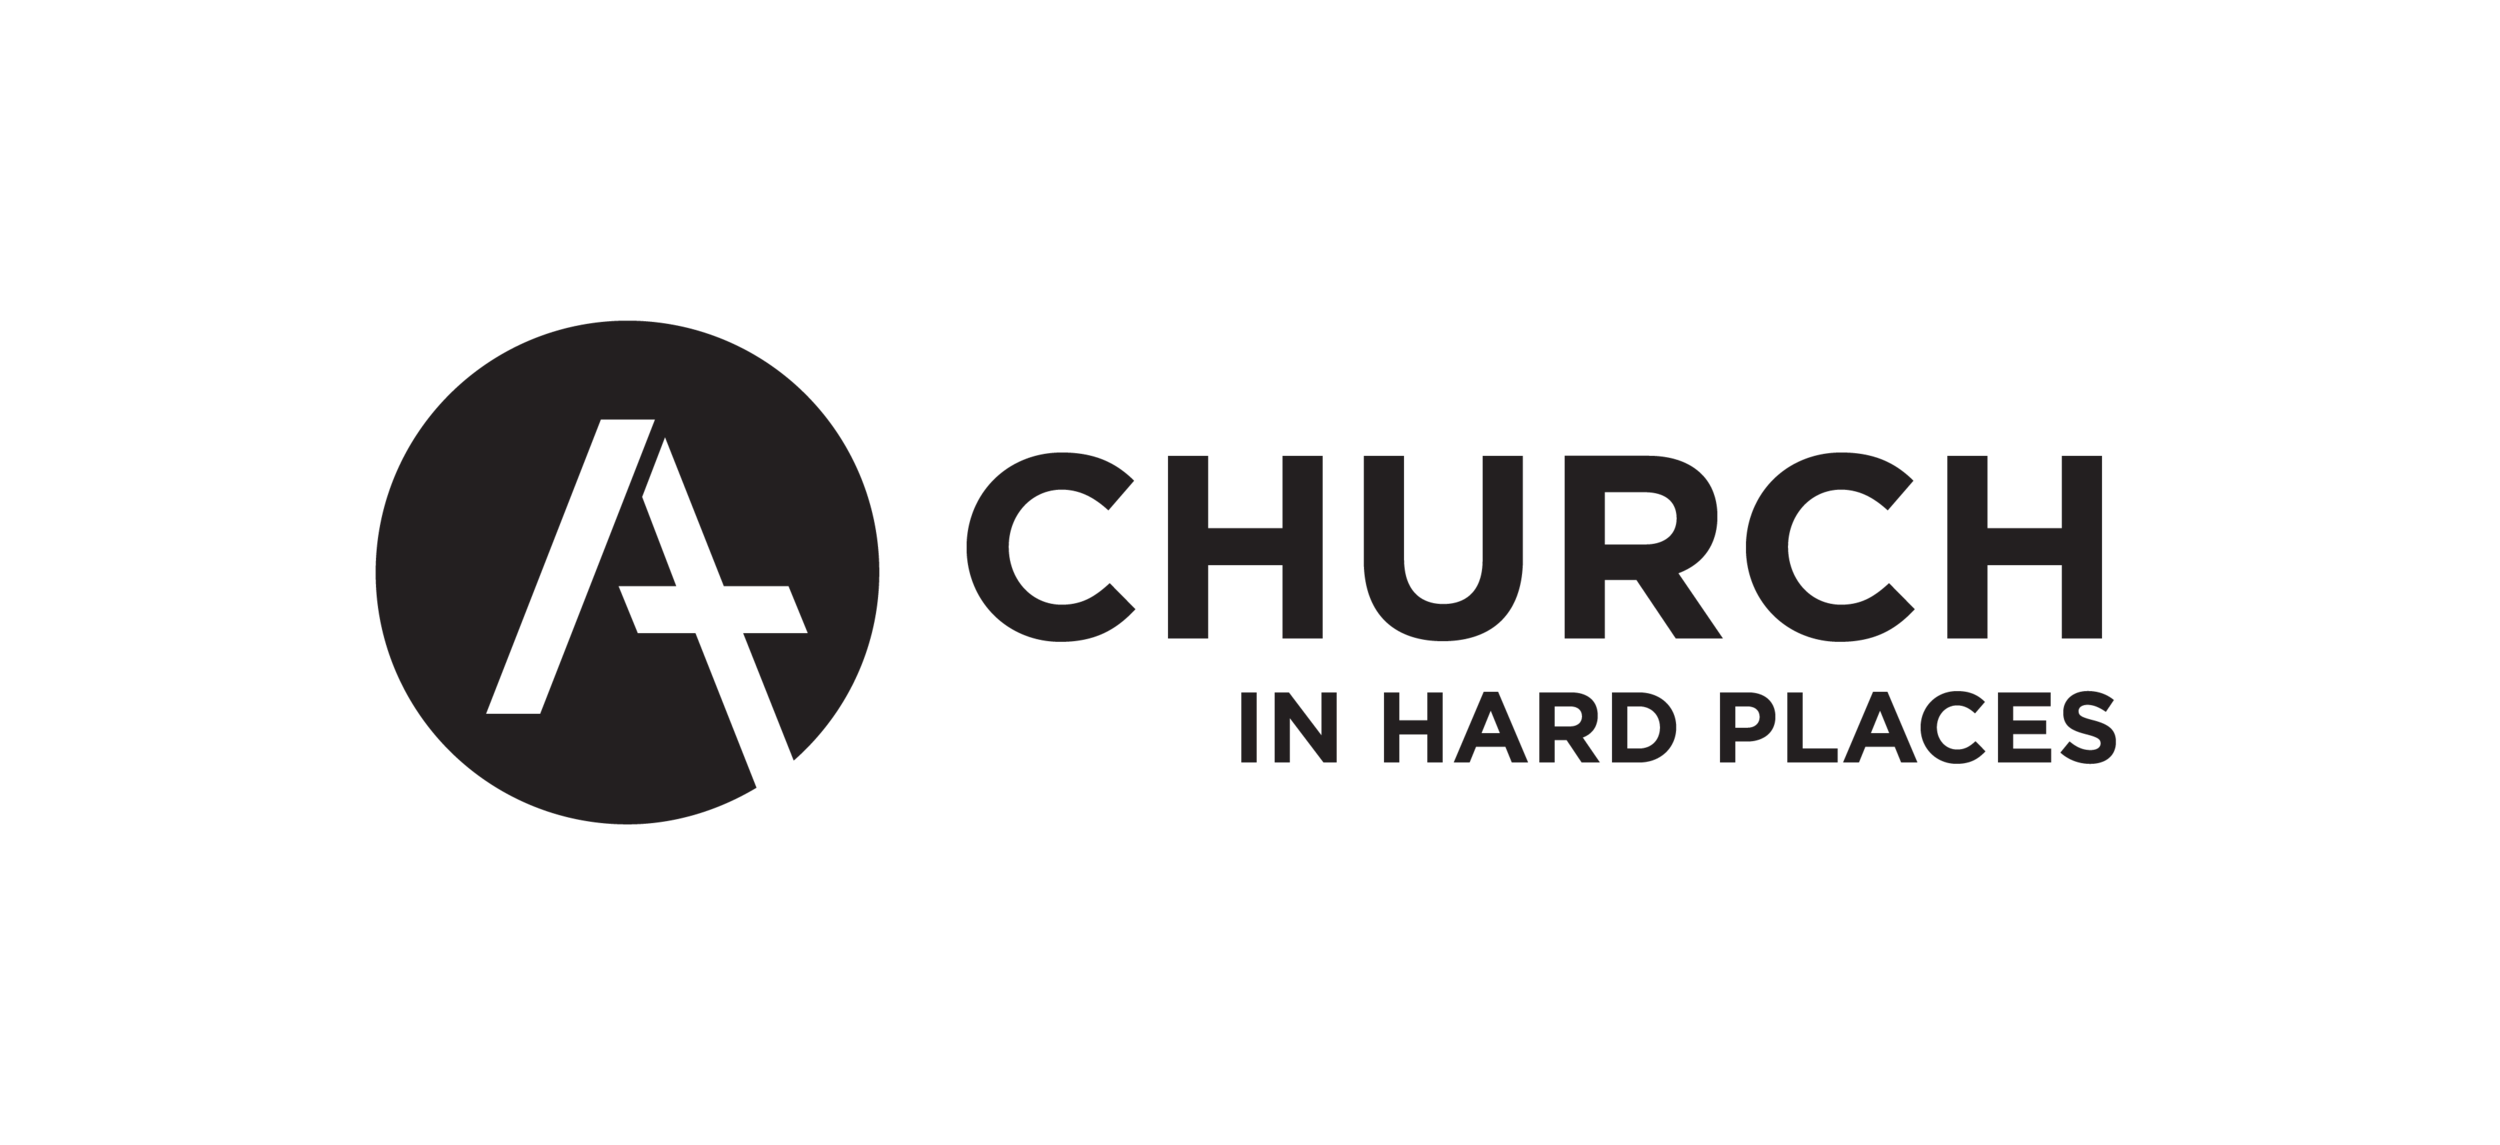 https://www.acts29.com/network/church-in-hard-places/